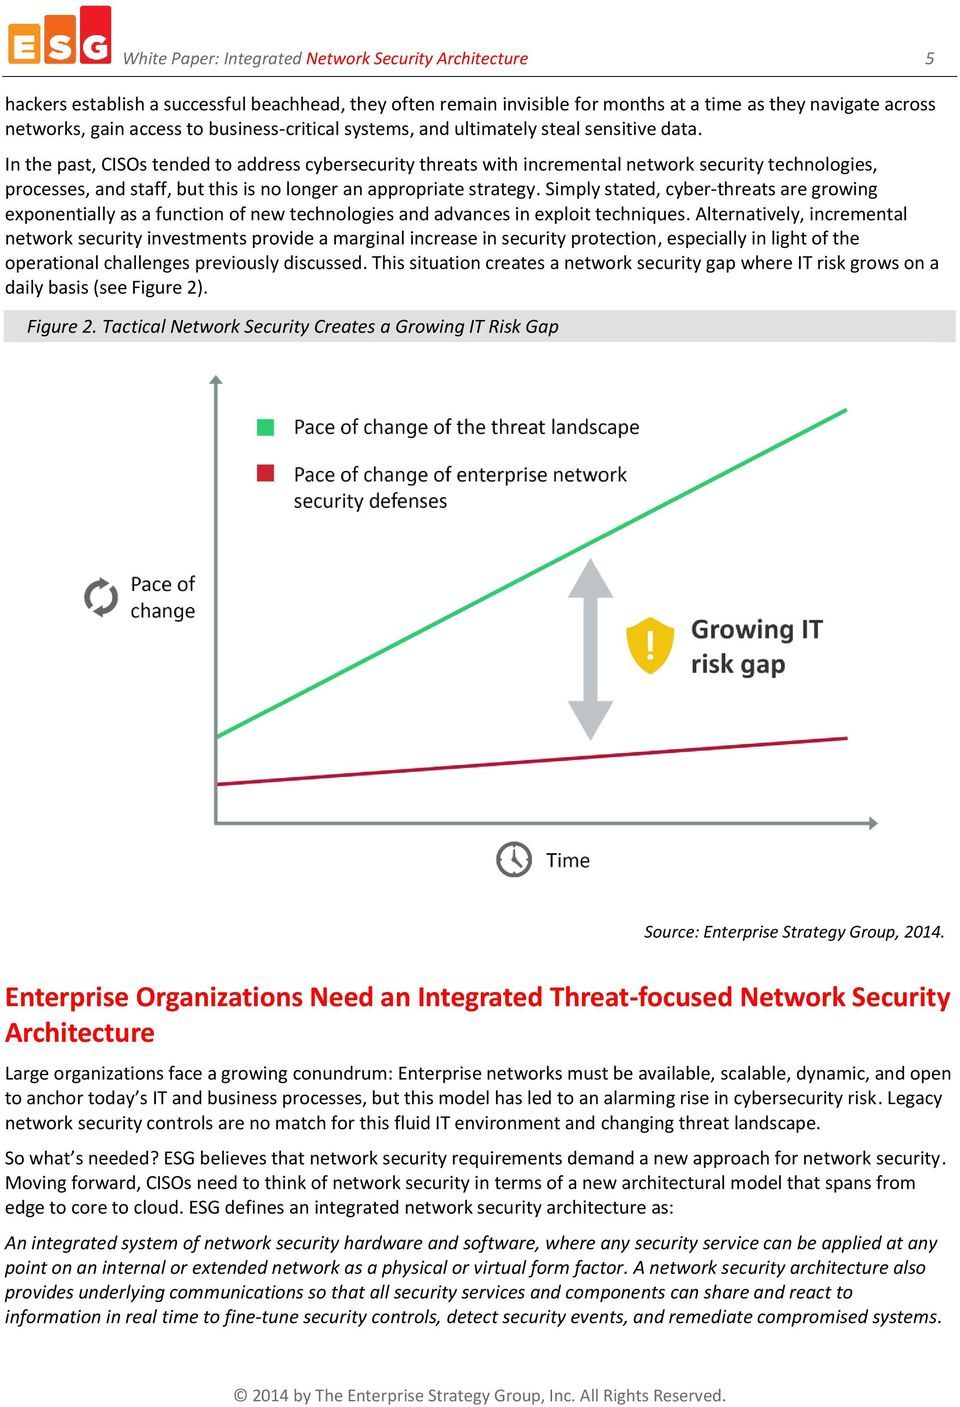 In the past, CISOs tended to address cybersecurity threats with incremental network security technologies, processes, and staff, but this is no longer an appropriate strategy.